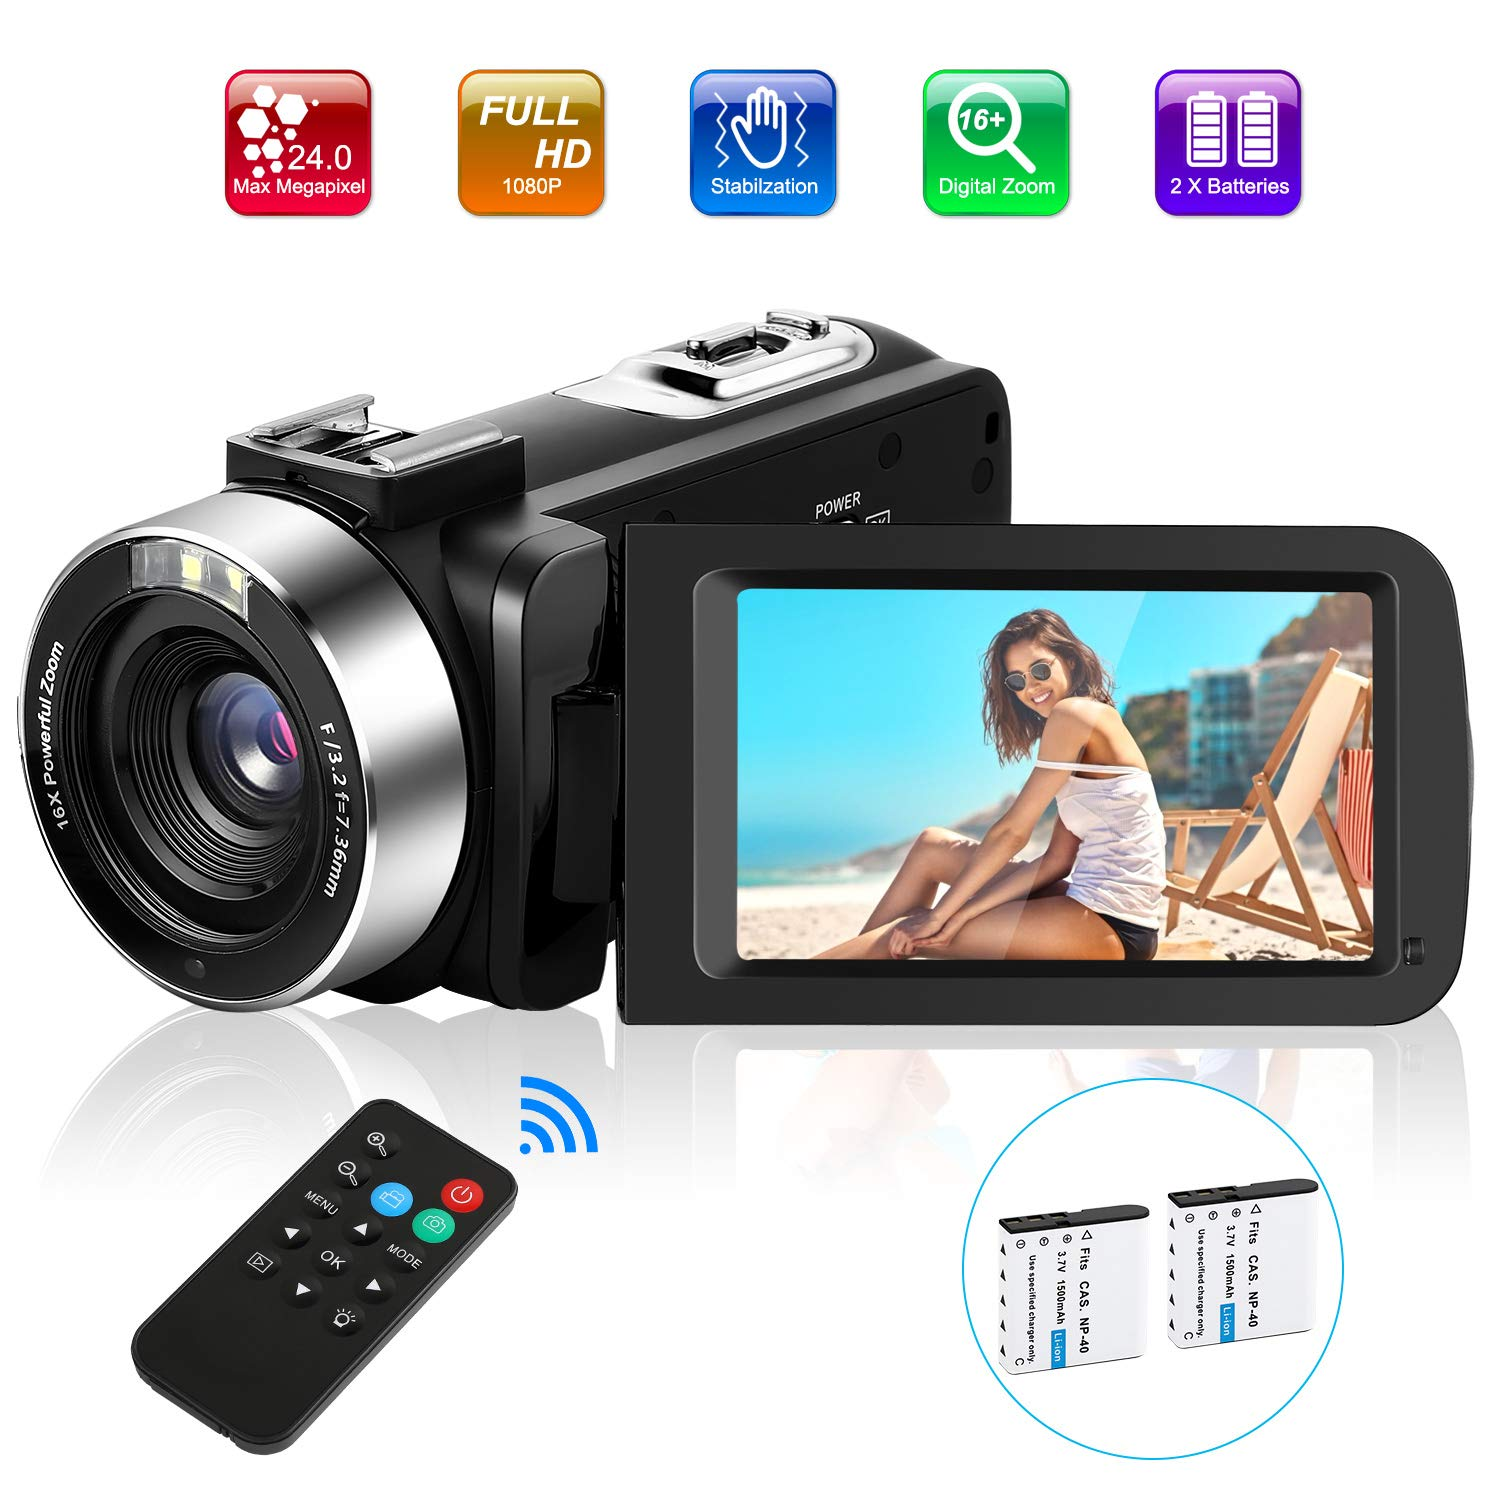 Video Camera Camcorder, Comkes Digital Vlogging Camera for YouTube Full HD 1080P 30FPS 24.0MP 16X Digital Zoom HD Camcorder with 2 Batteries and Remote Control